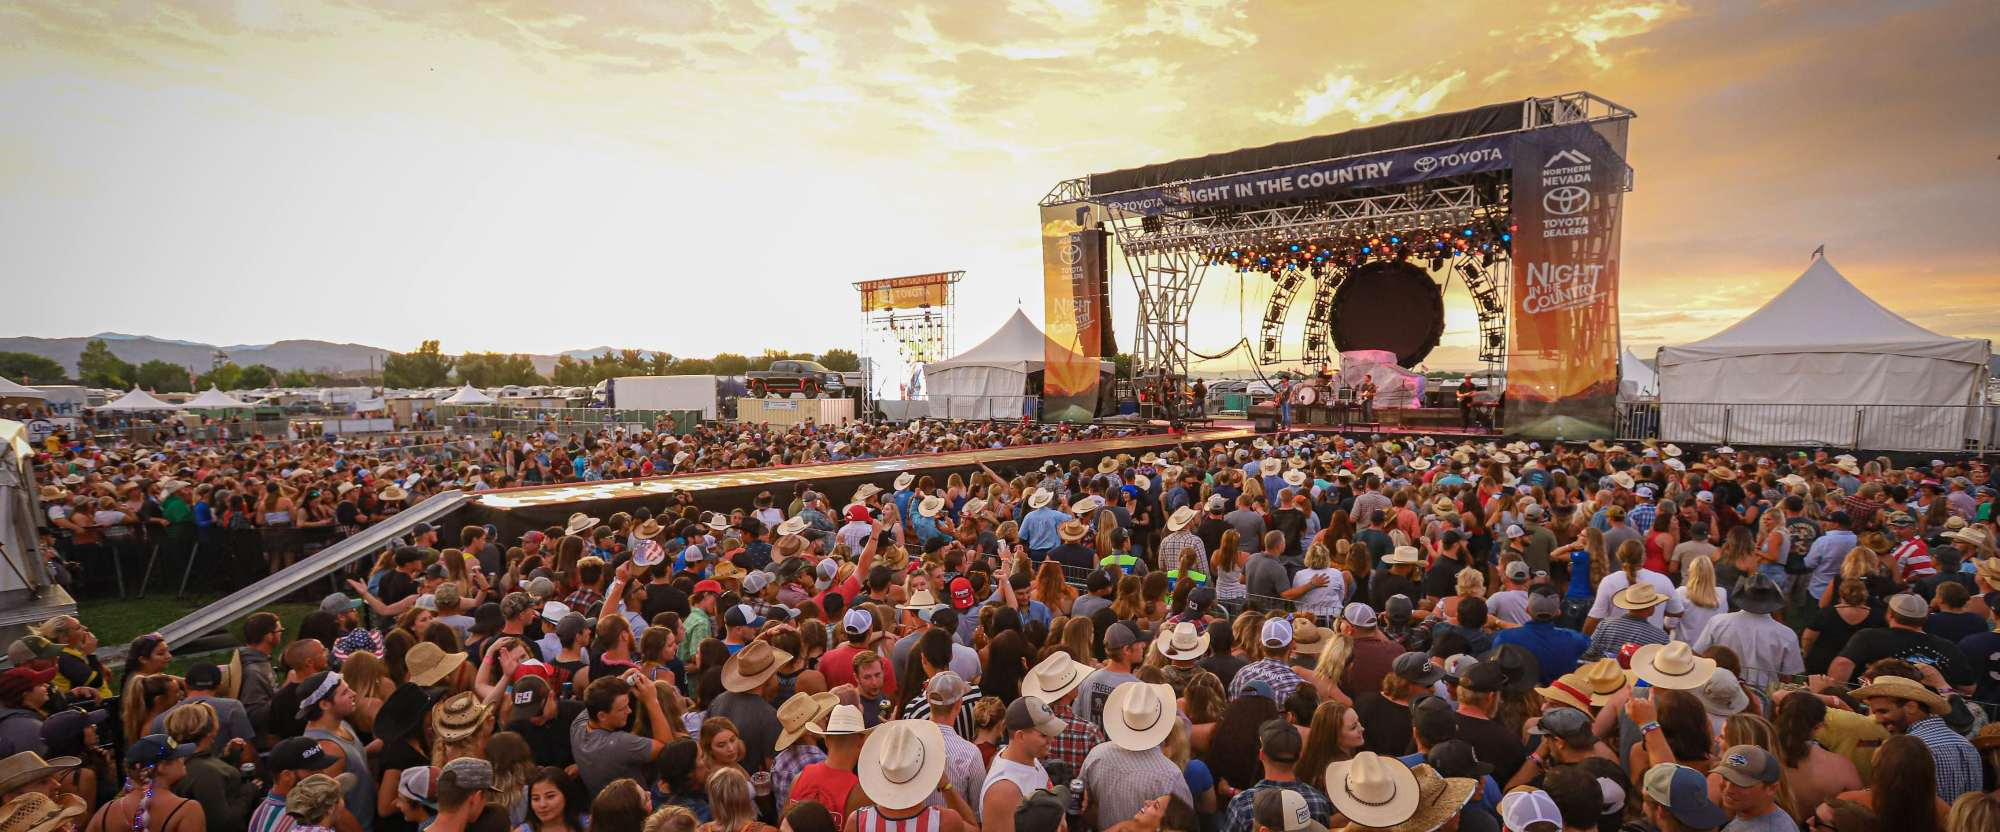 Night in the Country Festival 2021